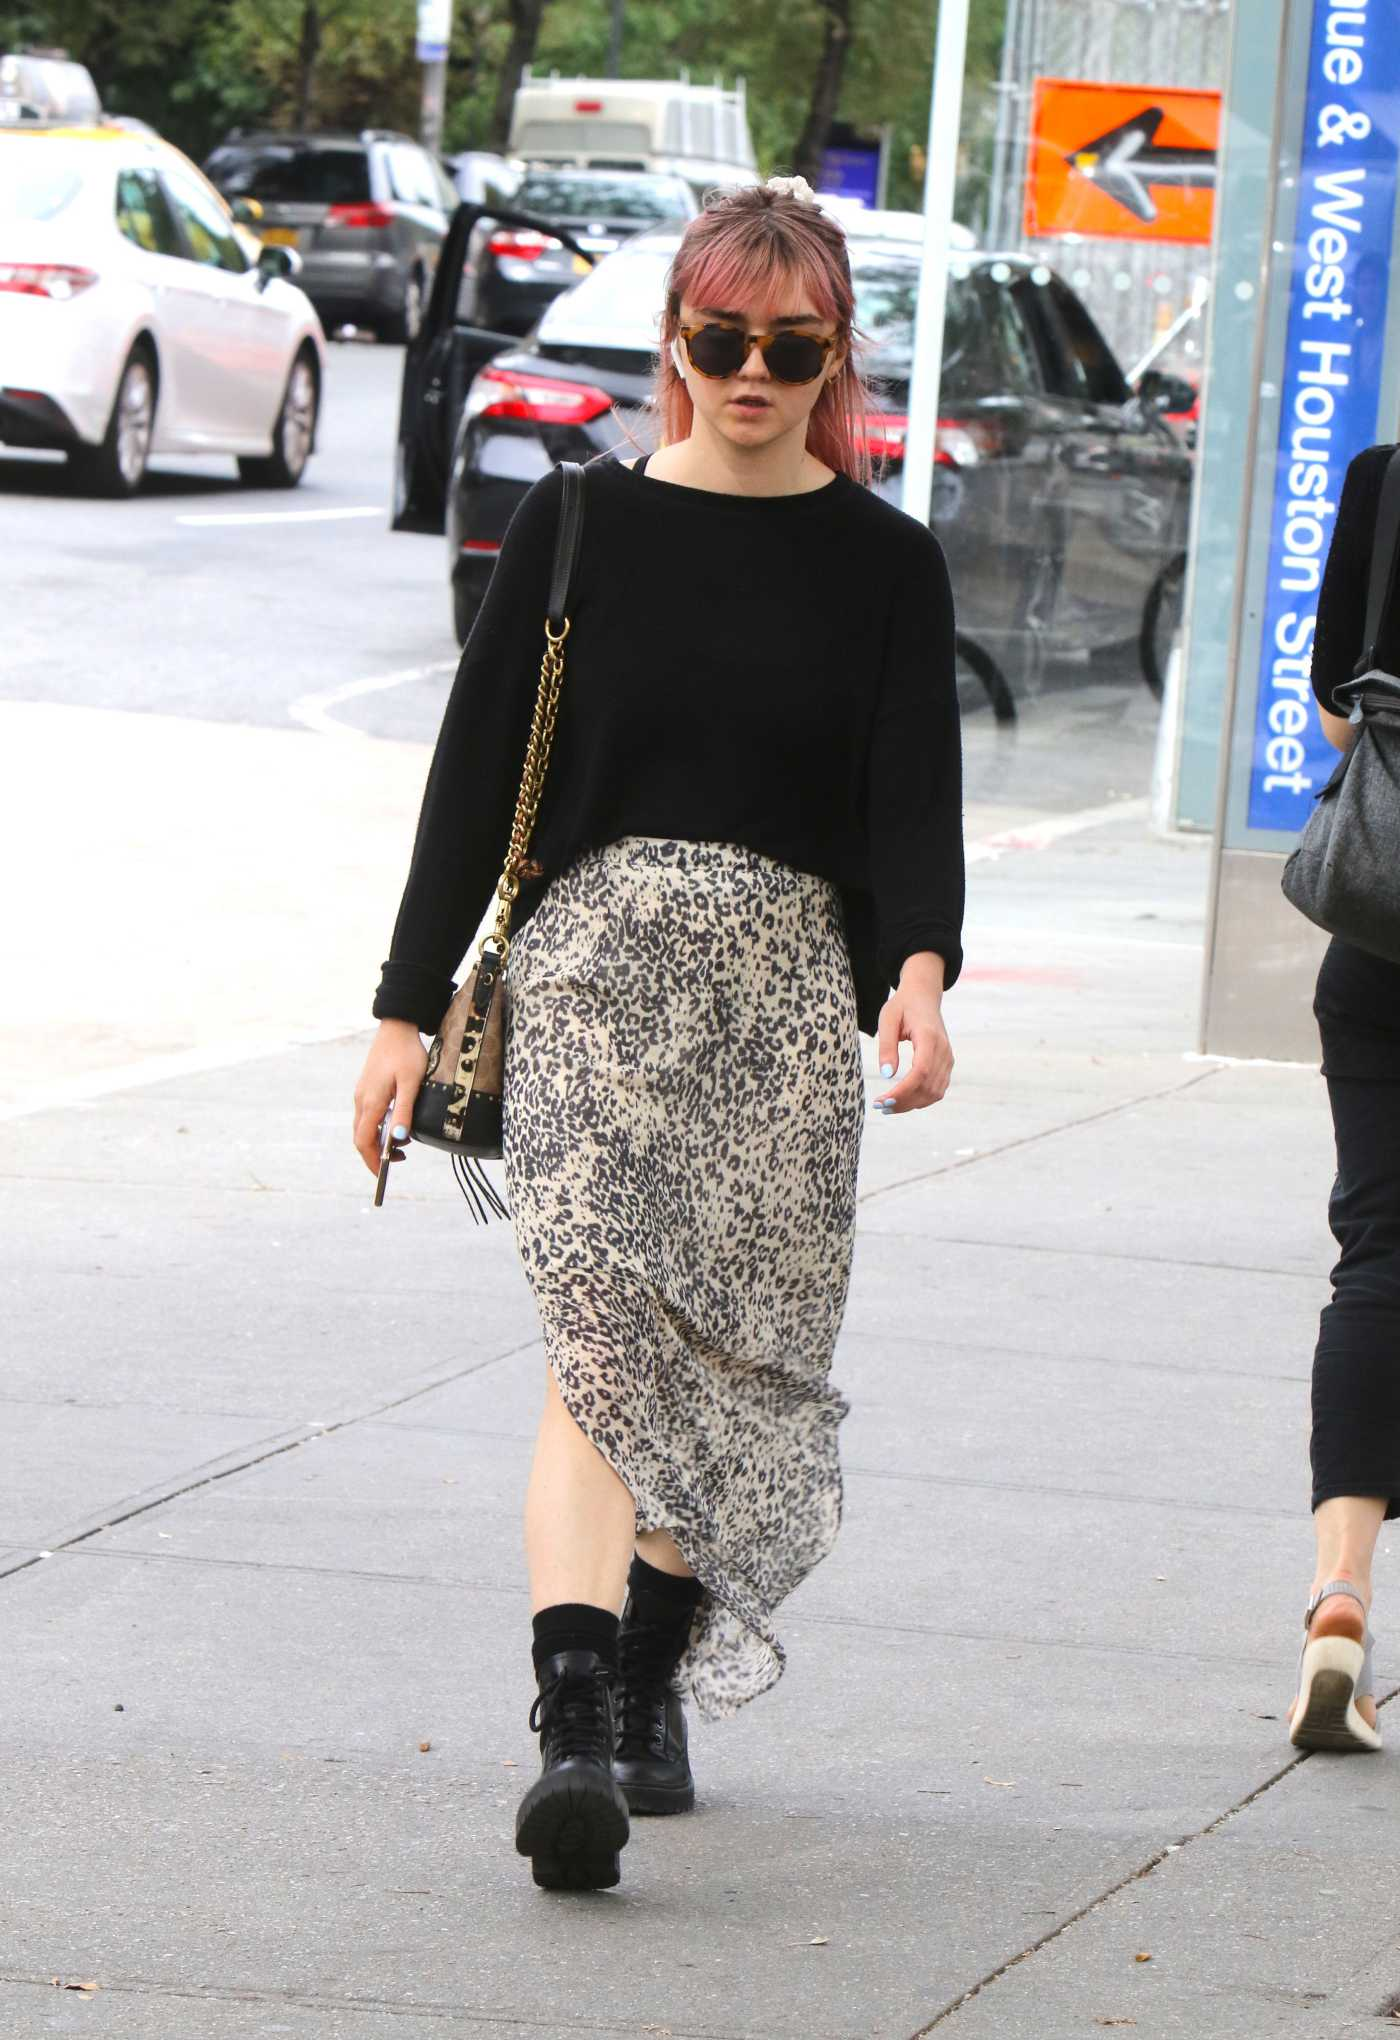 Maisie Williams in a Leopard Print Skirt Was Seen Out with Reuben Selby in NY 09/05/2019